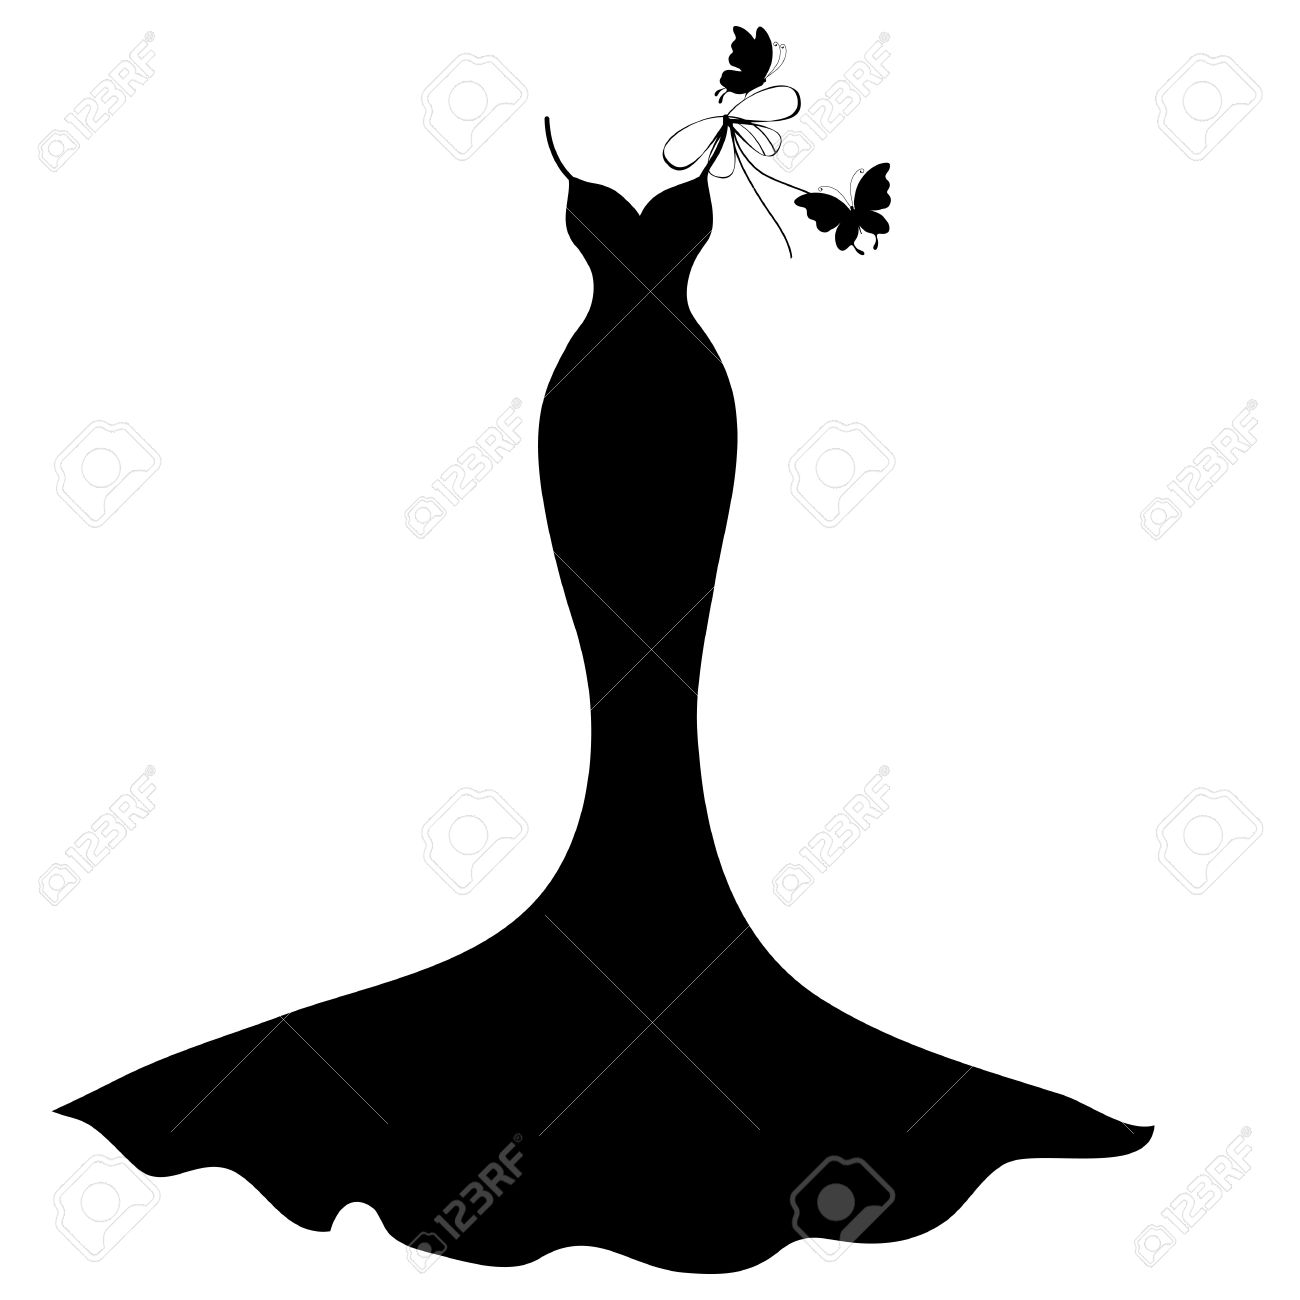 Bridal Silhouette Clip Art At GetDrawings.com